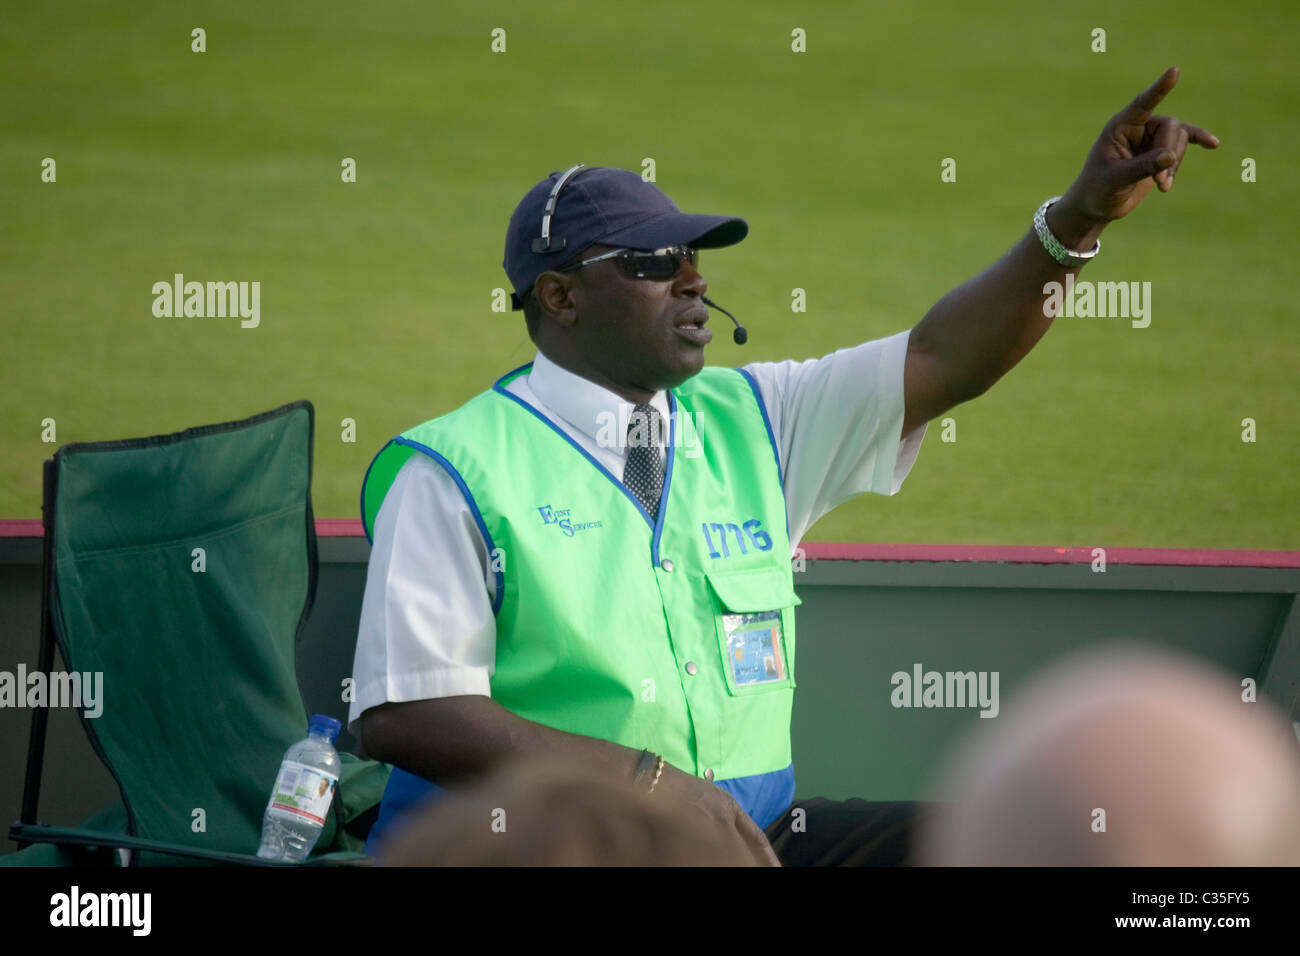 Security Official - Fourth Ashes Test Cricket Match Australia versus England held in Headingly England - Stock Image